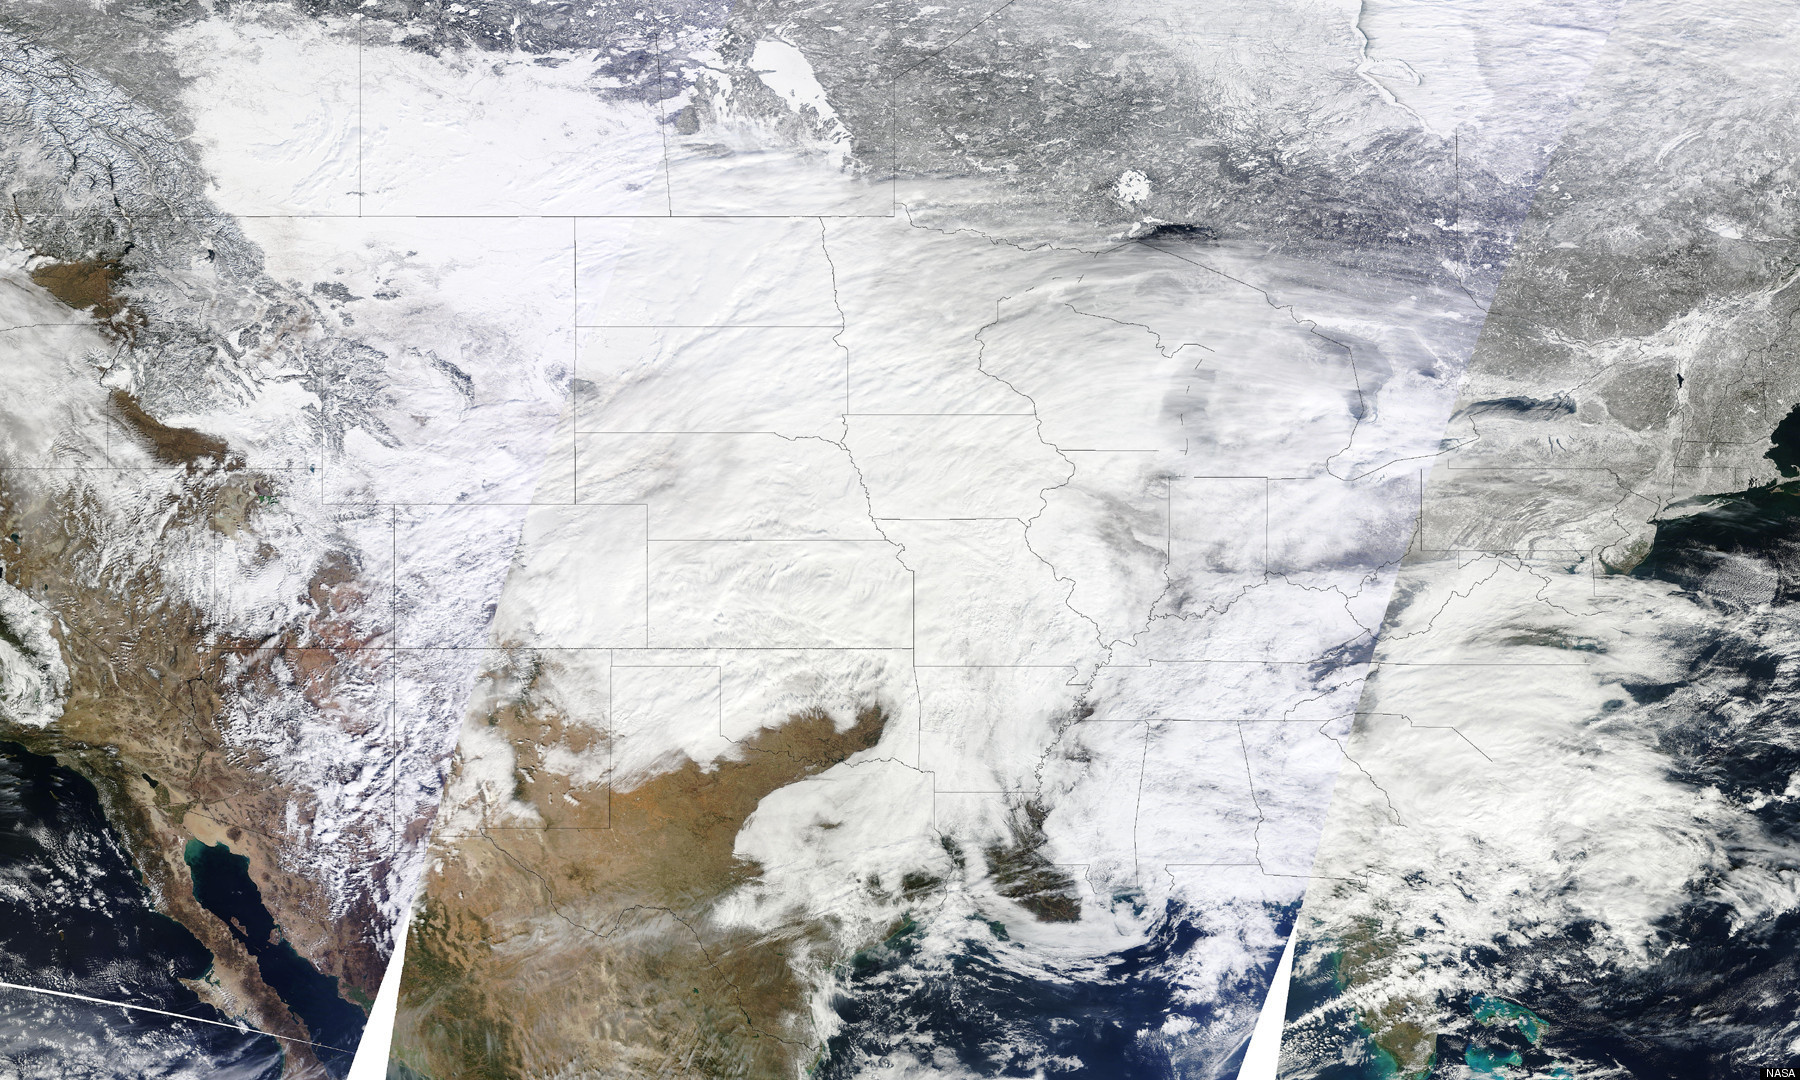 A snowstorm shown covering about 85% of the U.S.